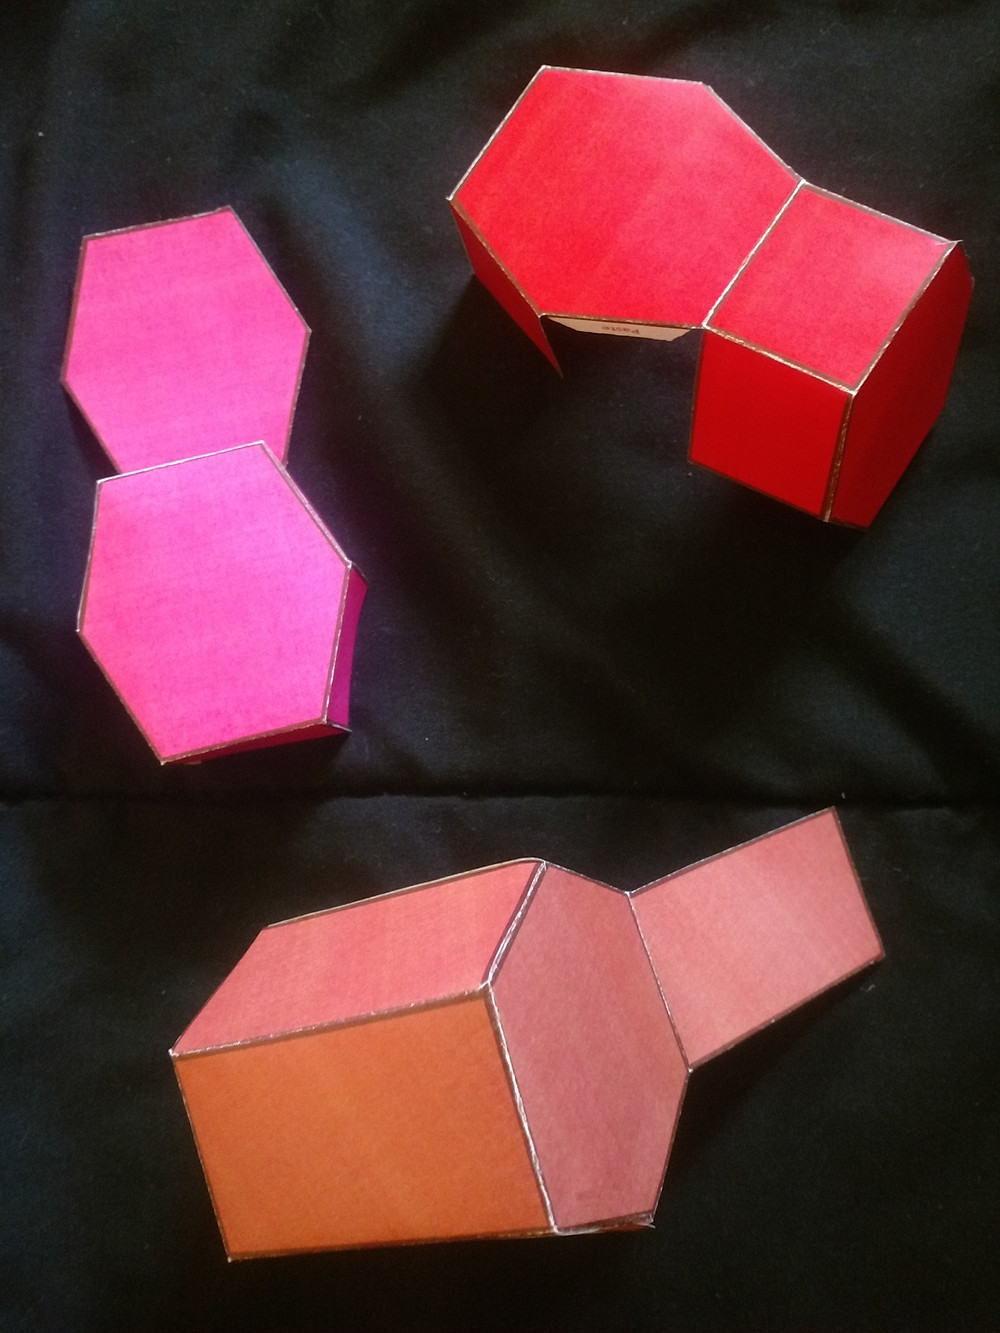 Folded and Bent Red Emerald Paper Models